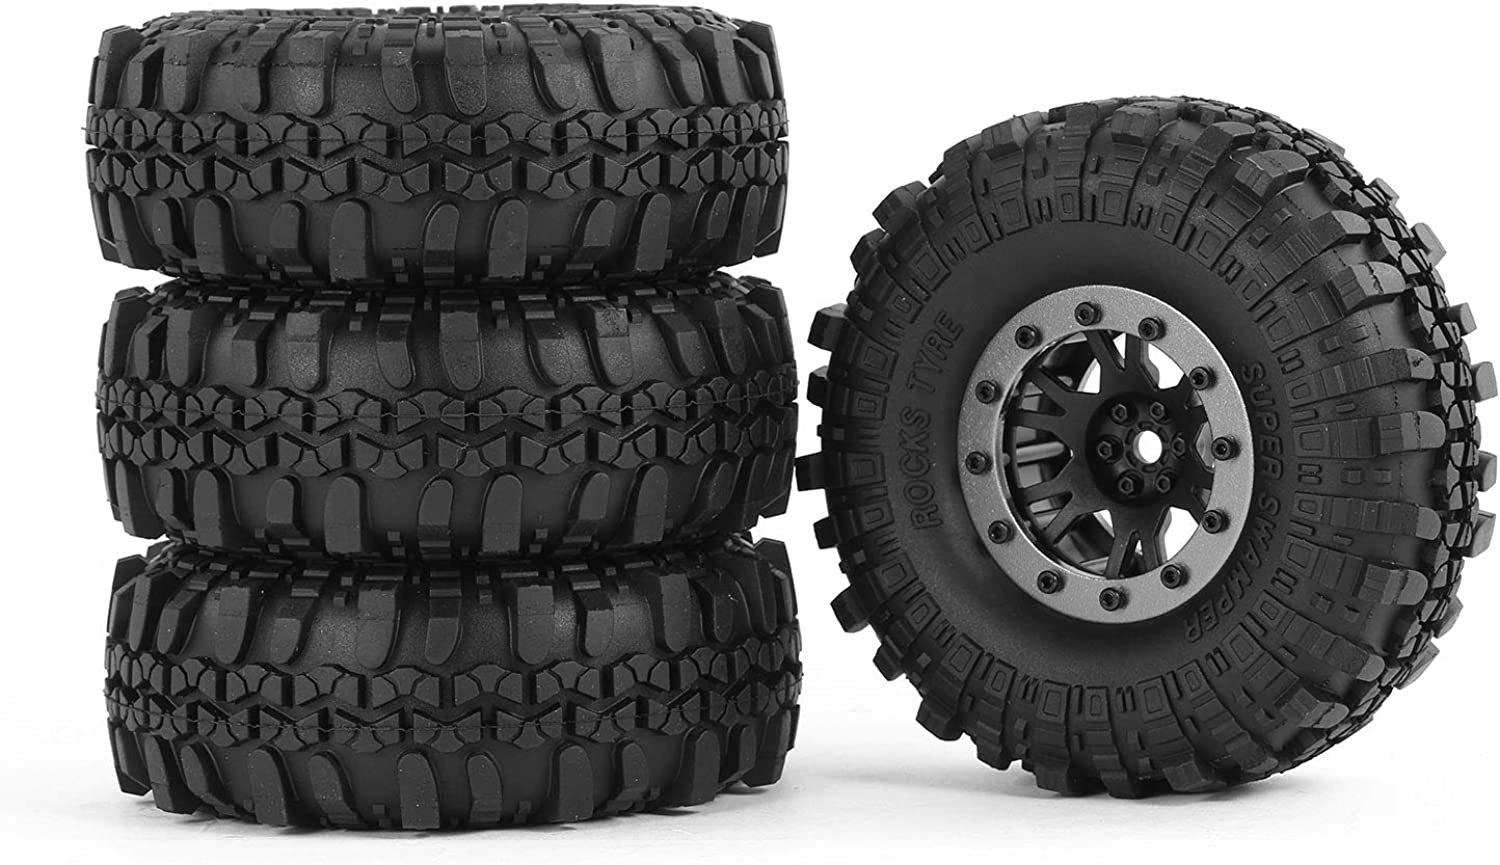 4pcs AX 40205 110mm 1.9in Rubber Tire with Alloy Beadlock Wheel Rim for AXIAL SCX10 90046 RC4WD D90 1 10 RC Rock Crawler Car